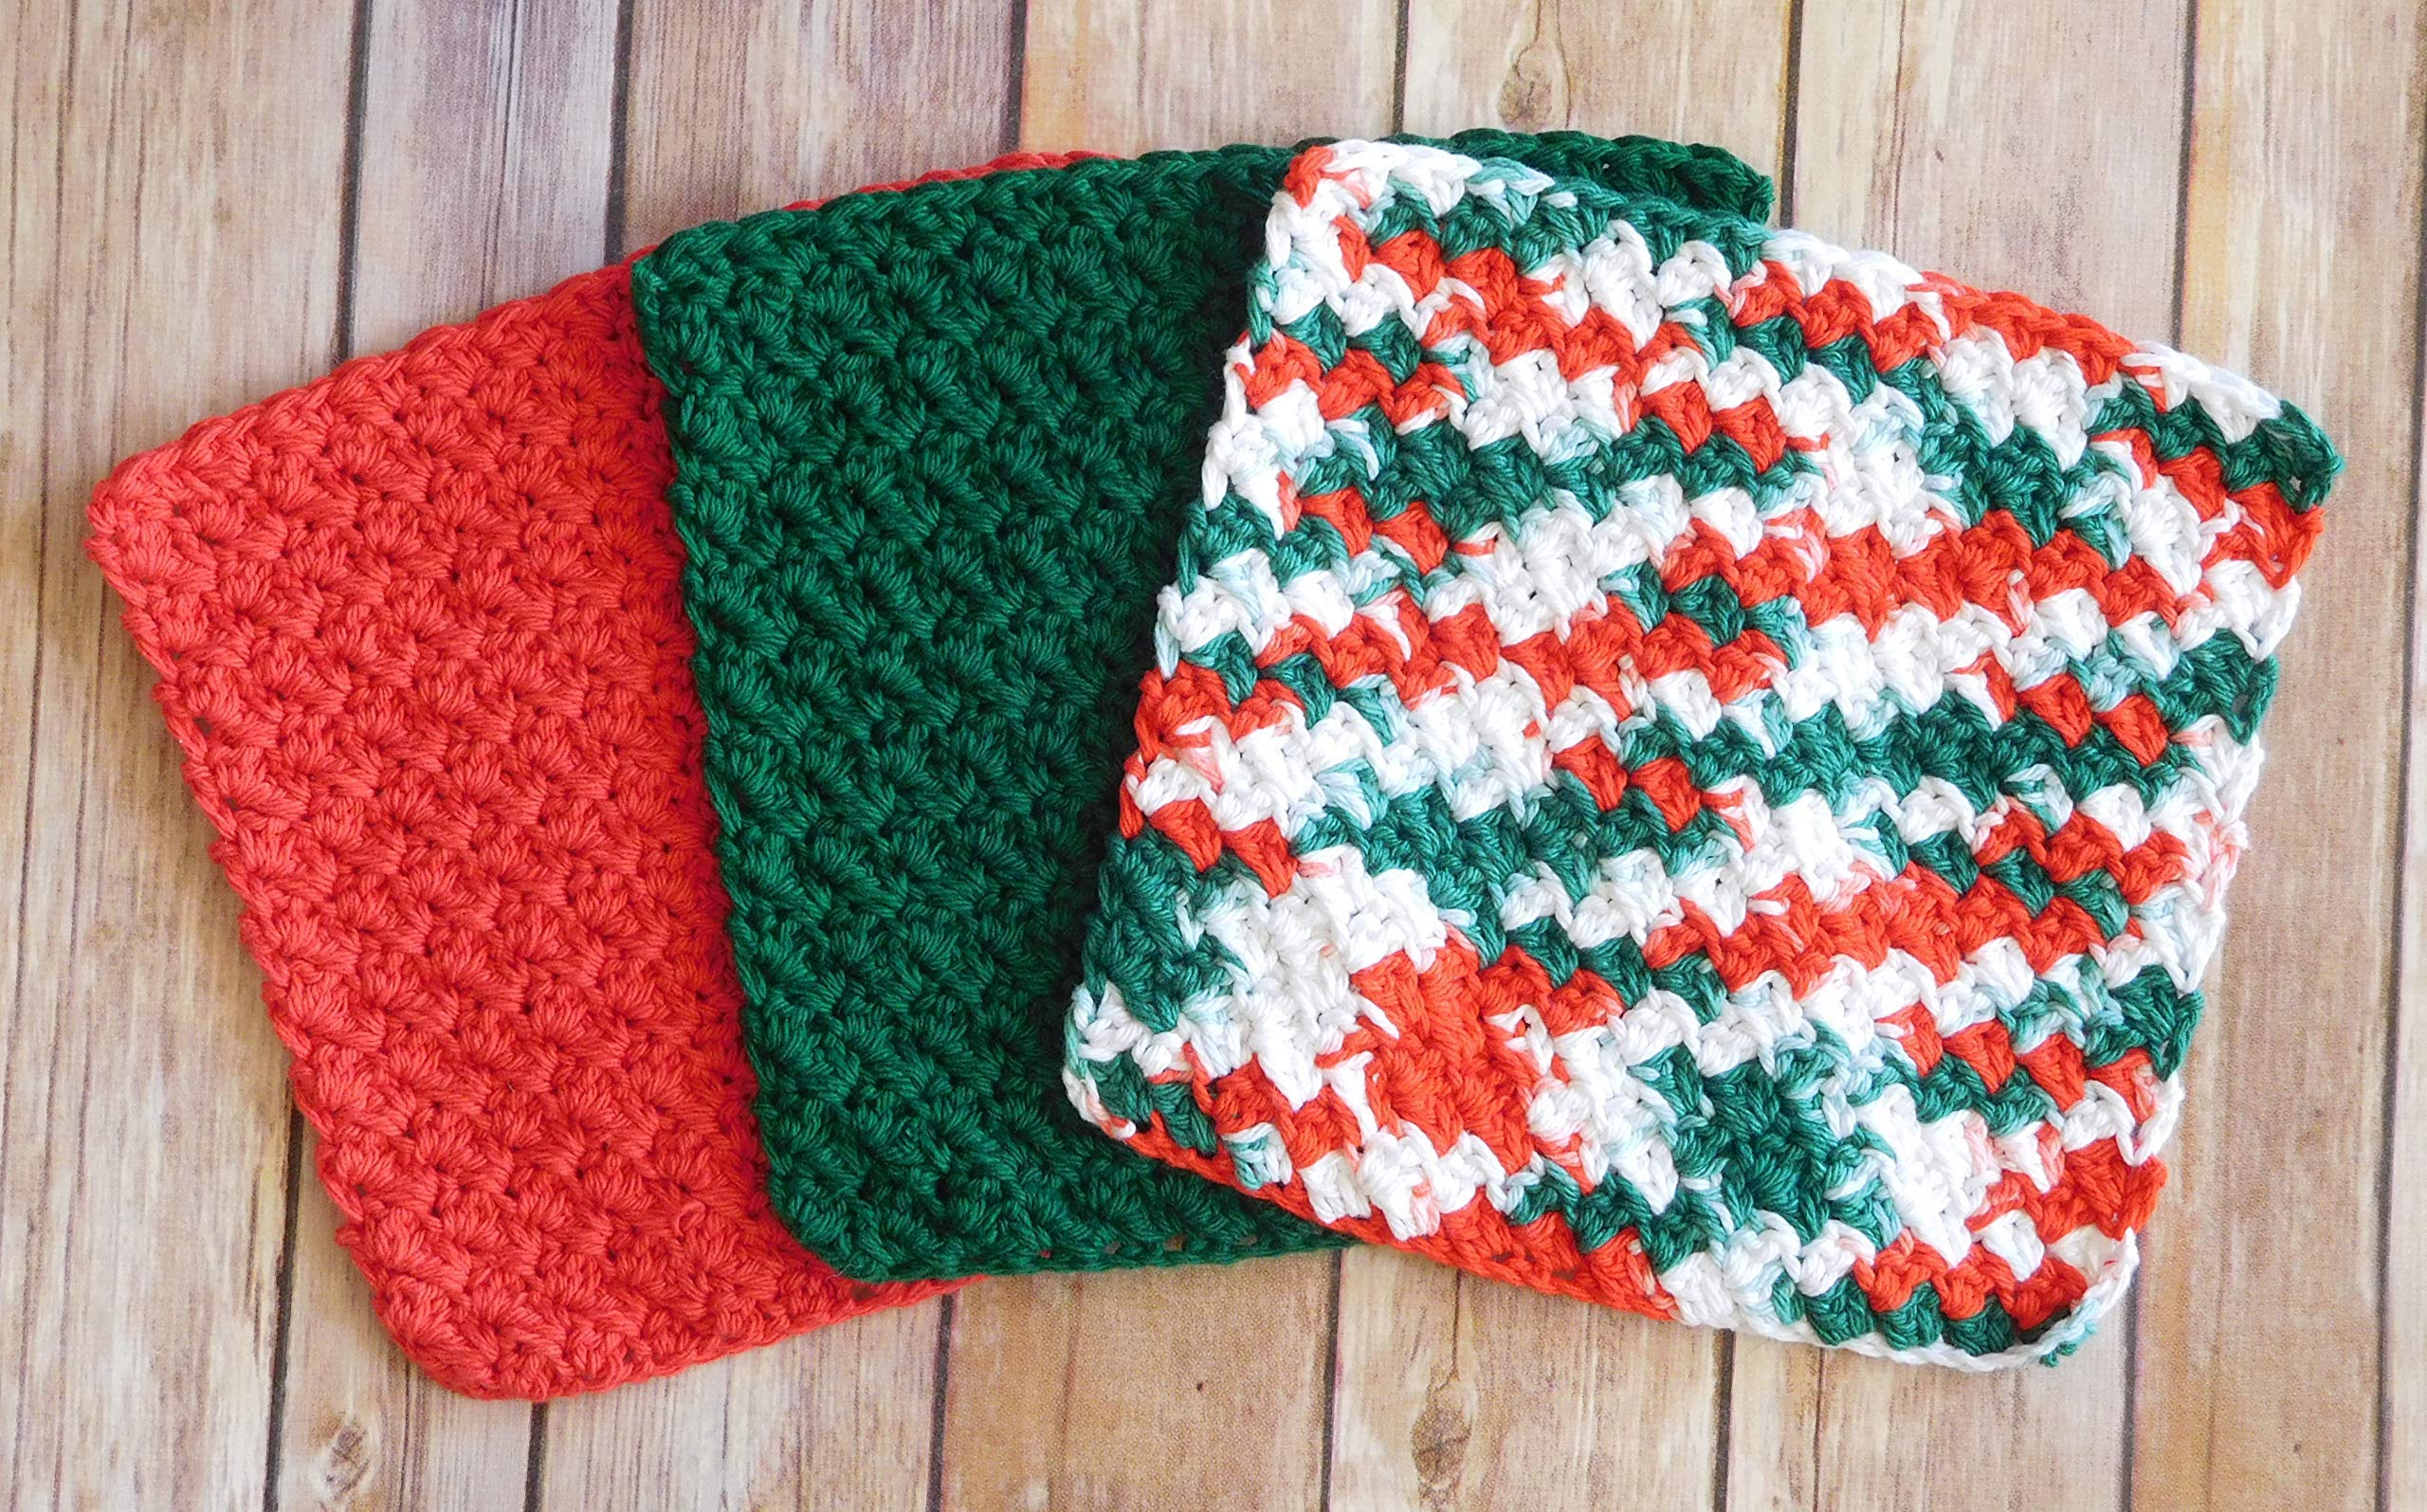 Crochet Kitchen Dishcloths, Set of Three, Red, Green, and Multi - Crochet Christmas Dishcloth